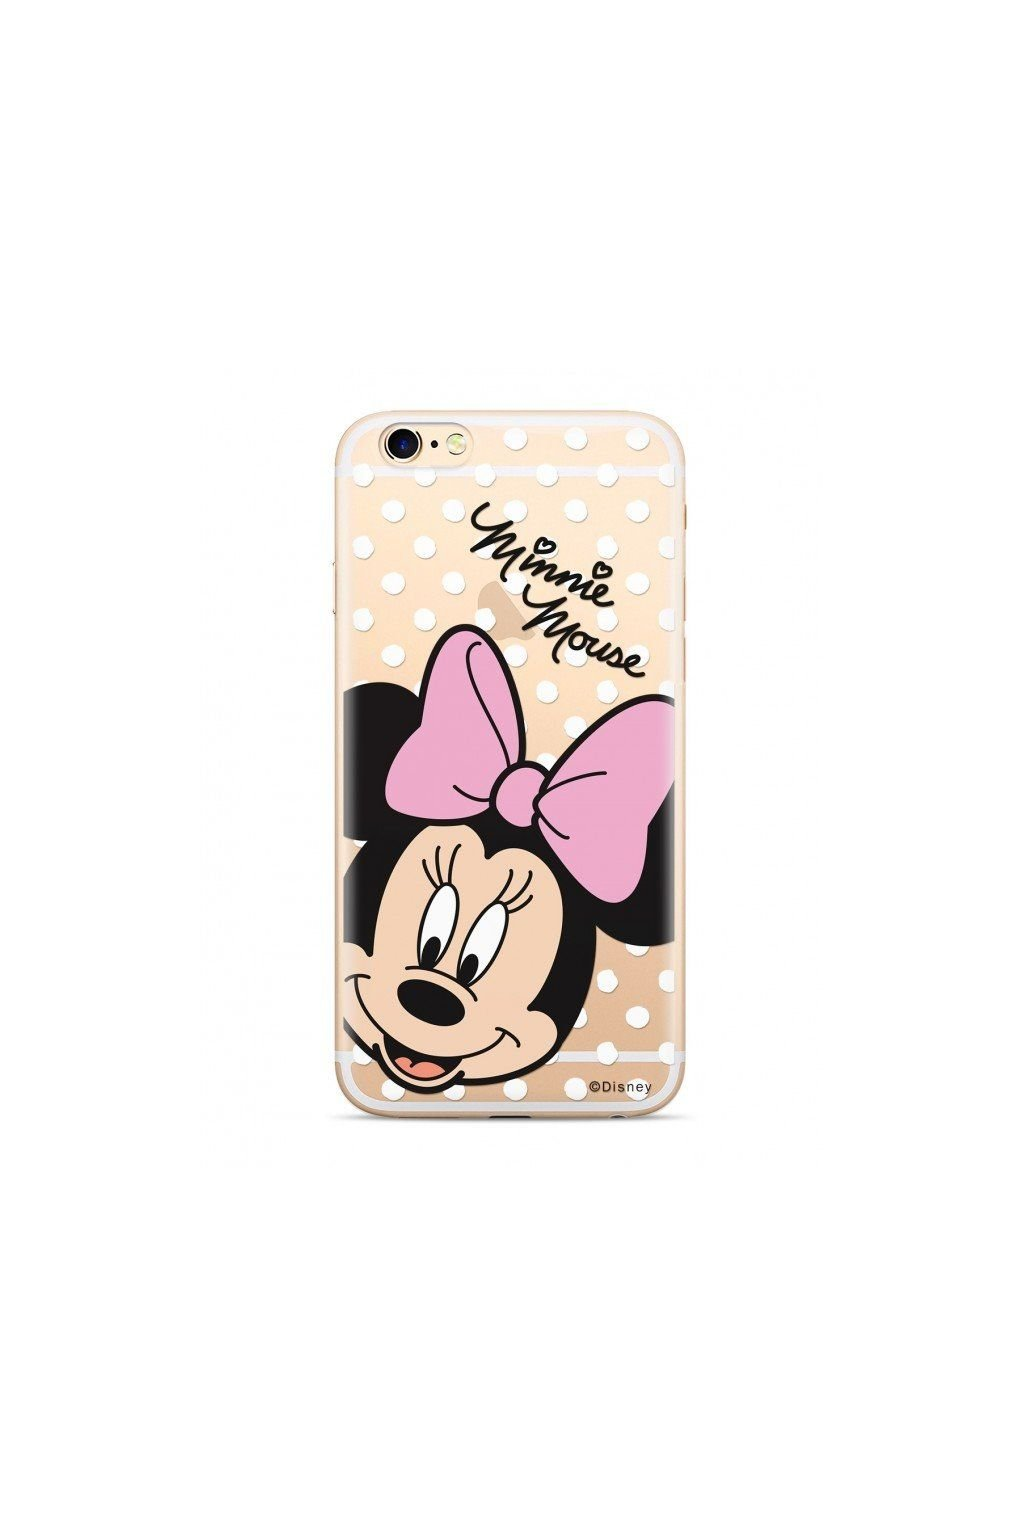 disney minnie 008 back cover pro iphone 5 5s se tr.jpg.big